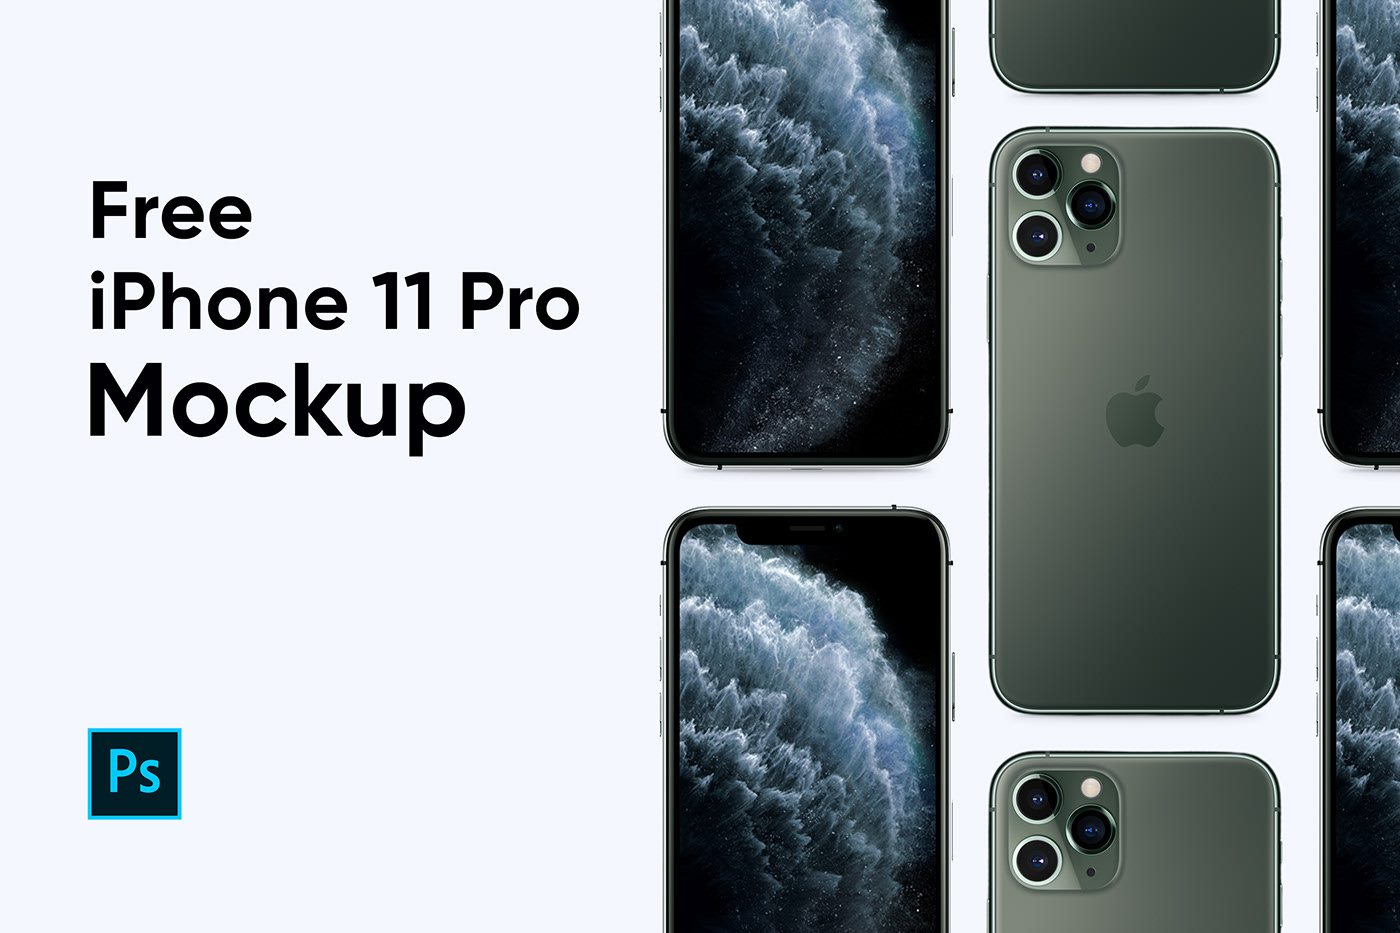 Free Apple iPhone 11 Pro Mockup